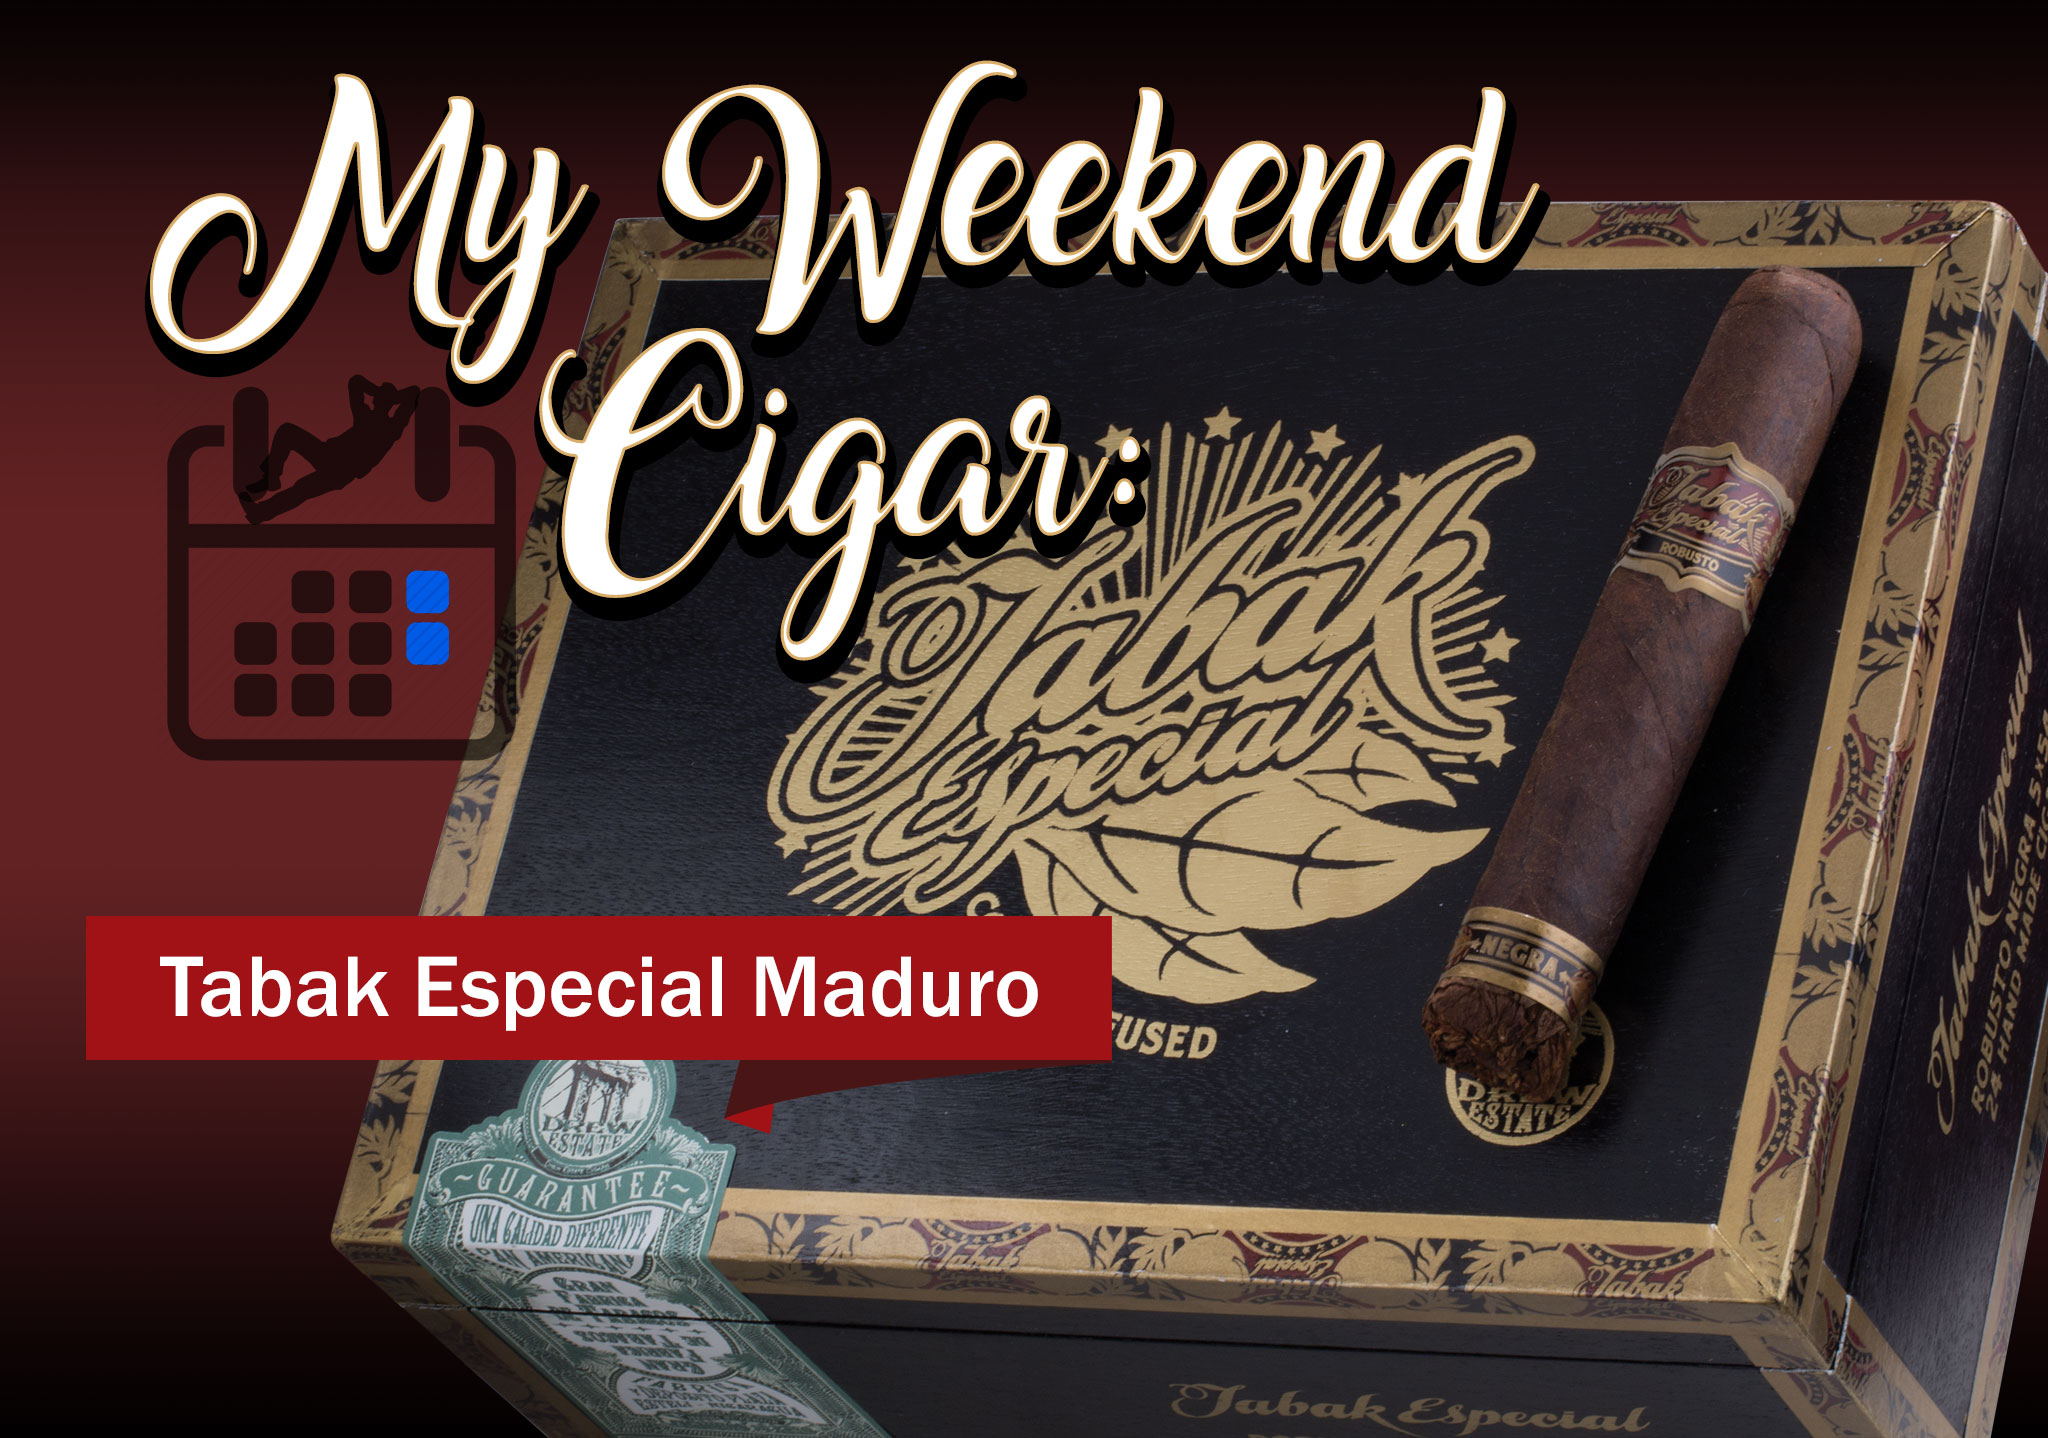 My Weekend Cigar: Jan. 15, 2018 – Tabak Especial Negra